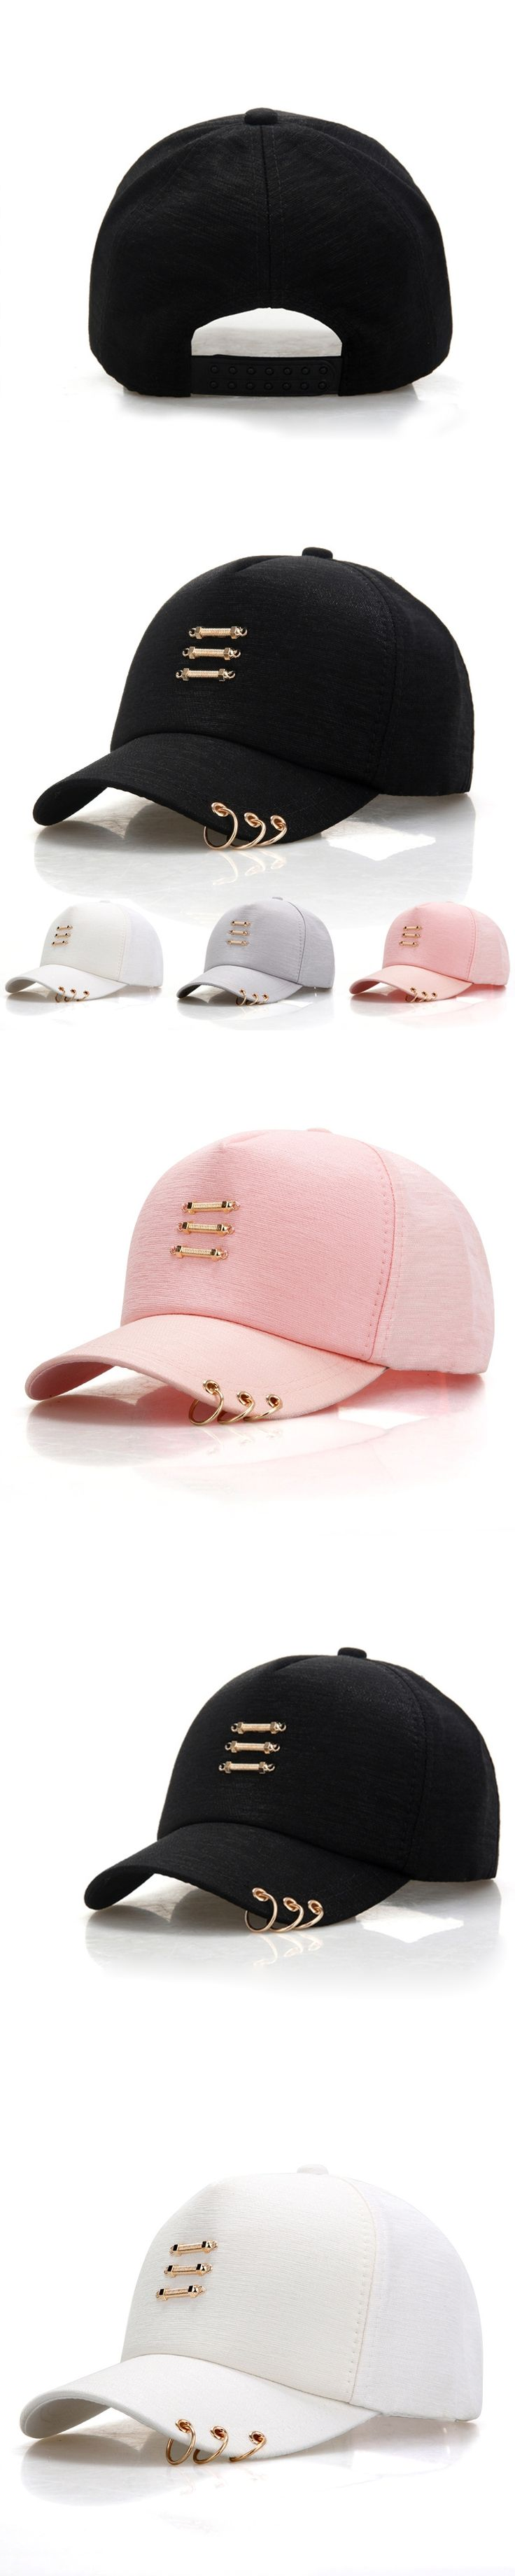 baseball cap For Men Women Sports hat with hoop male hip hop cap Casquette Gorras snapback caps for ladies black white pink gray